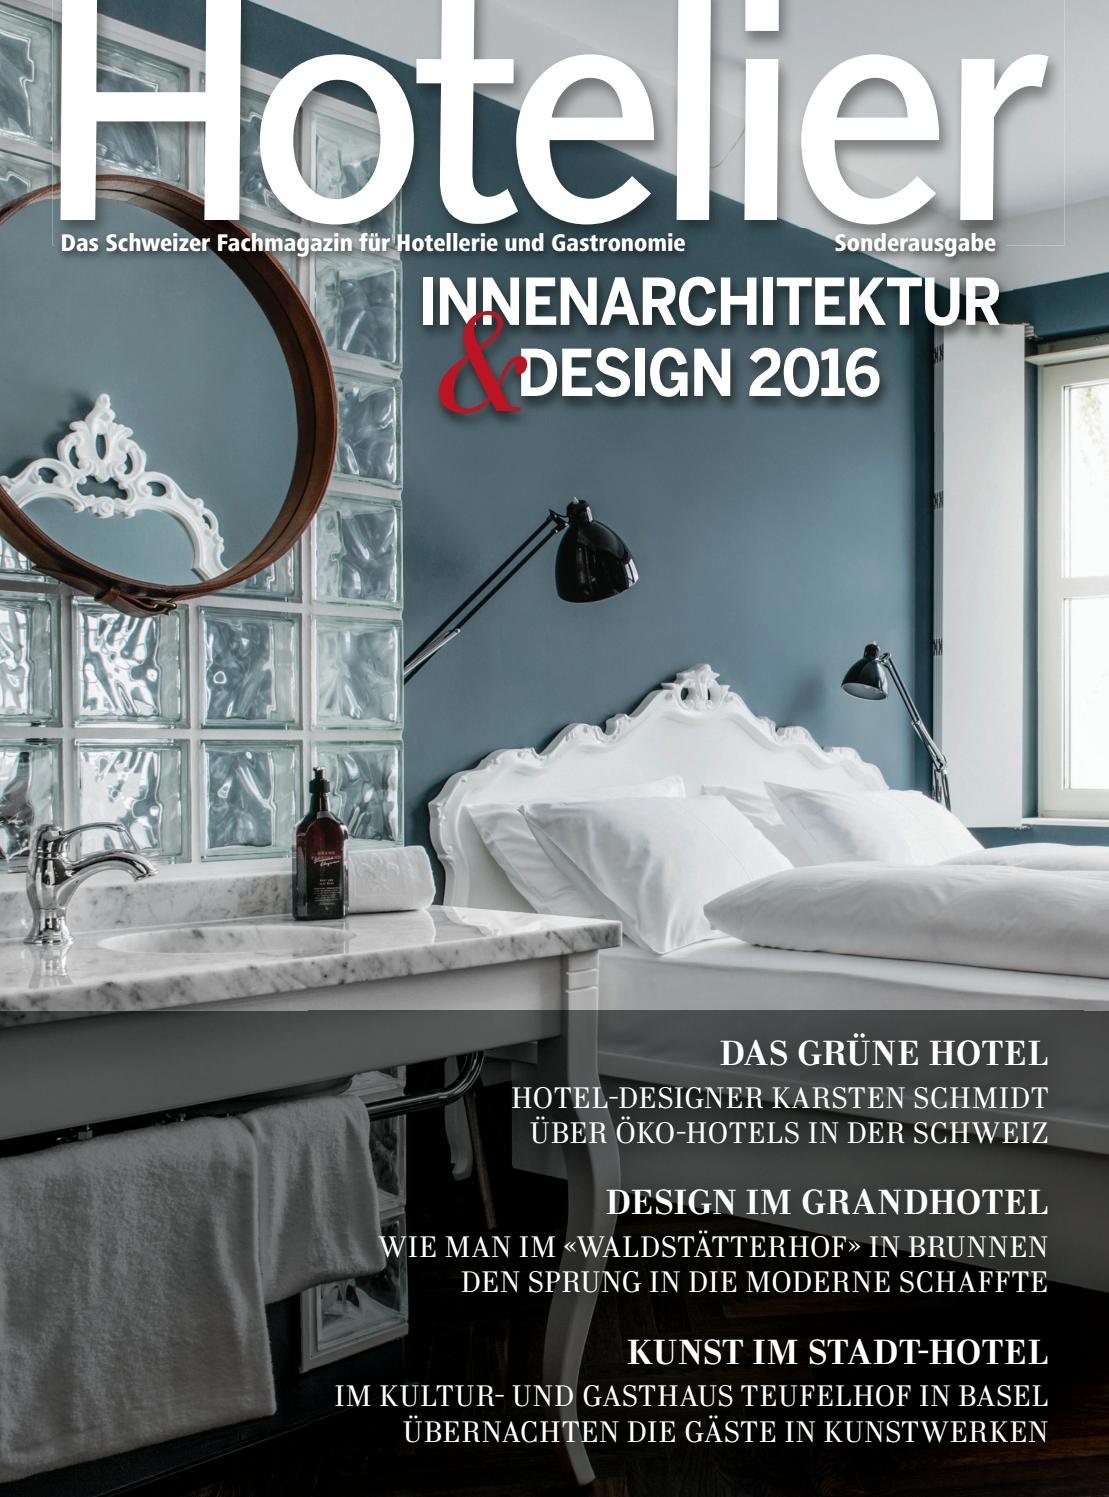 Hotelier Innenarchitektur&Design 2016 by BL Verlag AG - issuu